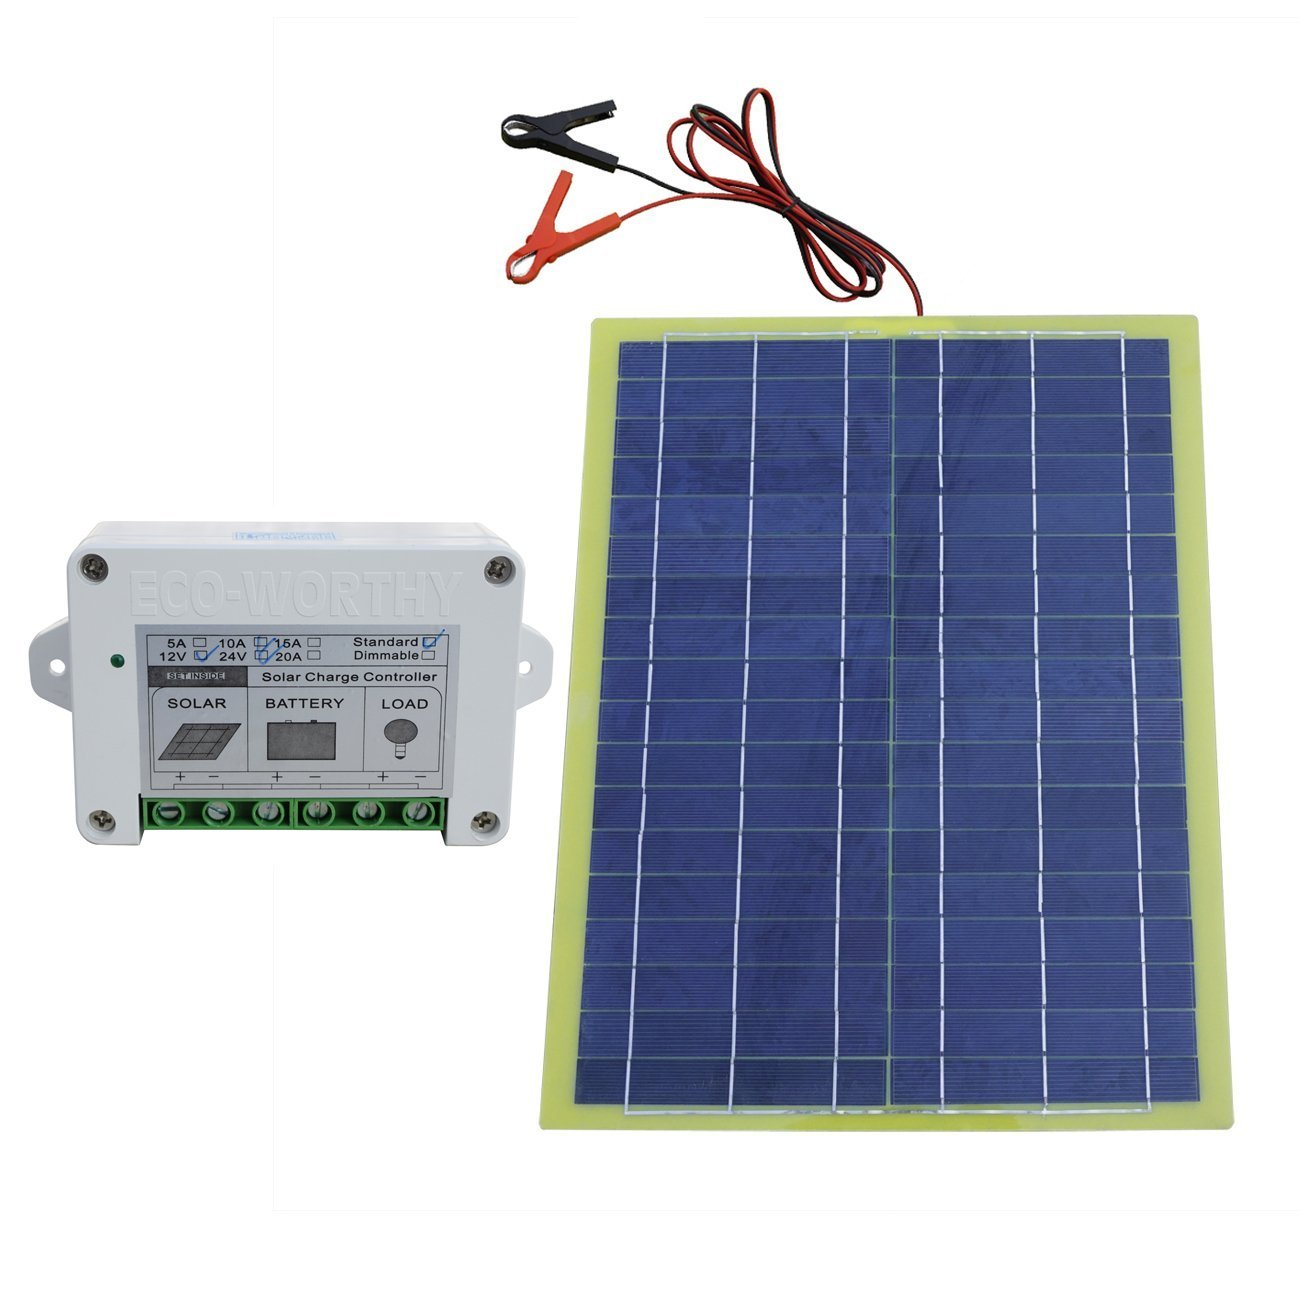 ECO-WORTHY 12 Volt 20W Epoxy Solar Panel Kits W/ PWM 10A Controller for 12V Battery Charge